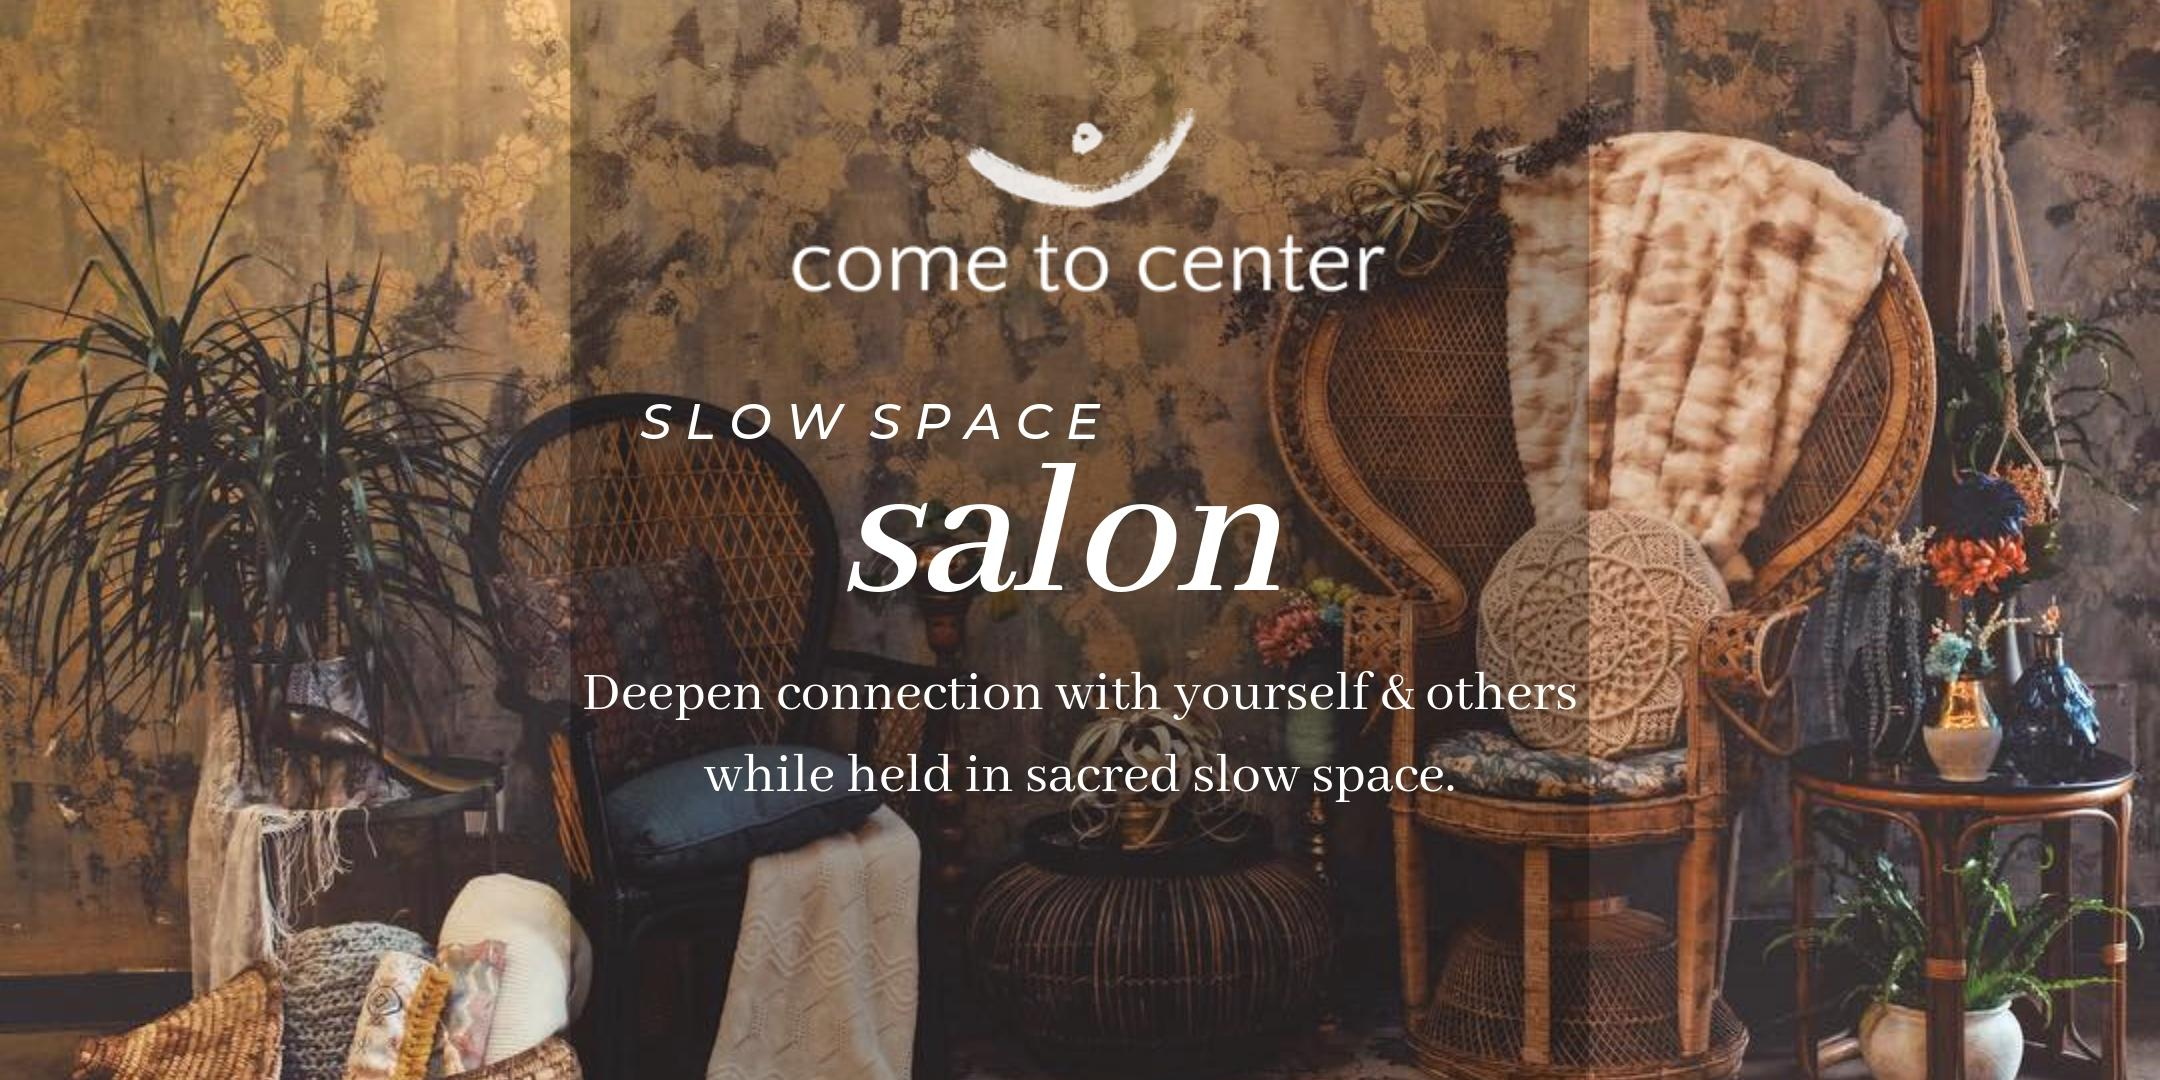 SLOW SPACE! Connection . Intention . Community